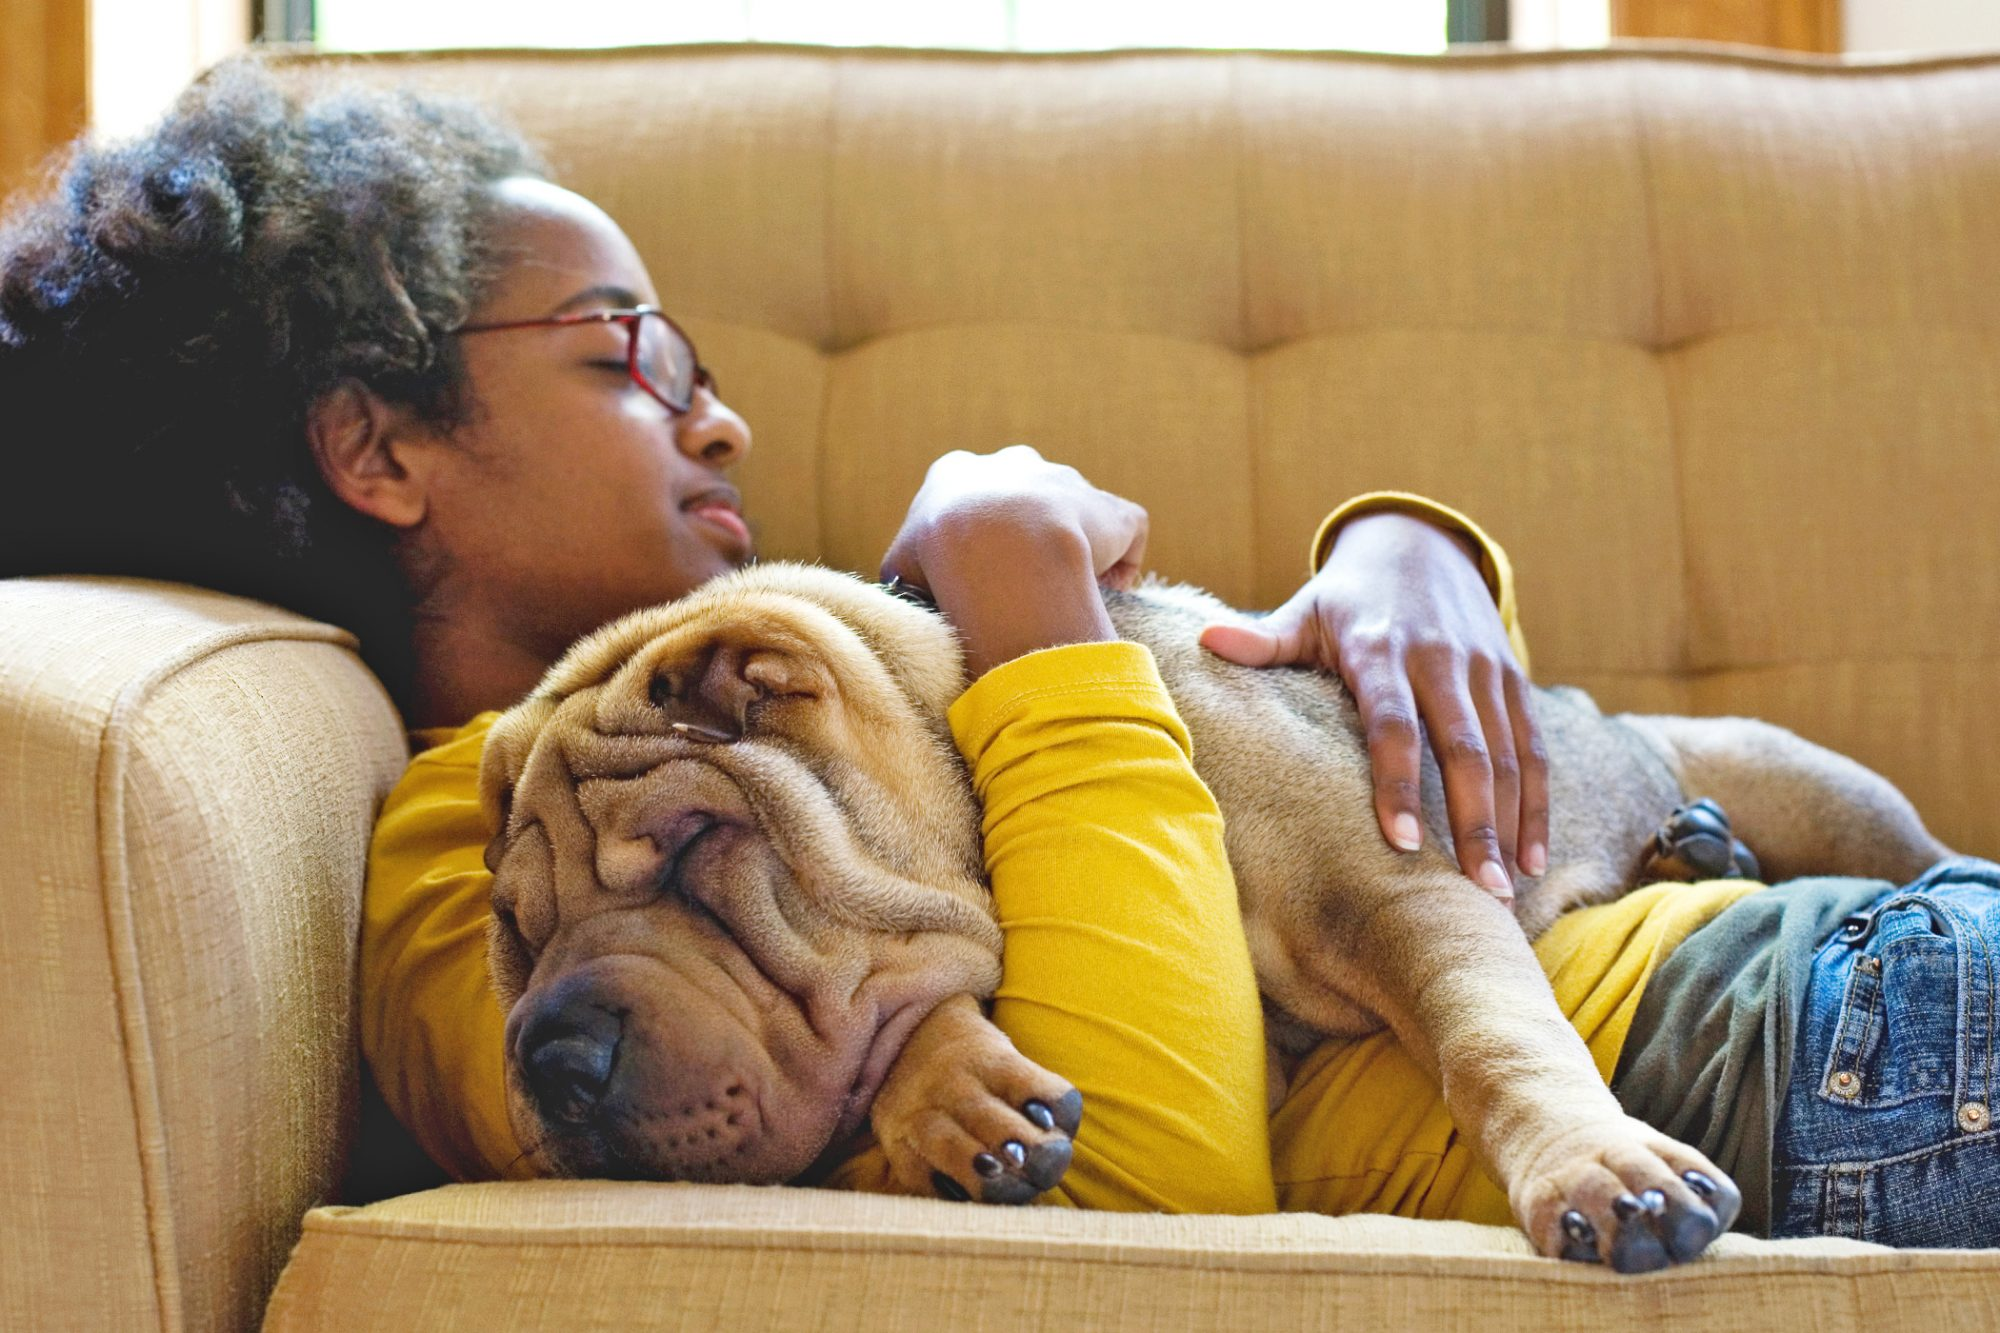 Young Black teen girl cuddles with tan shar-pei dog on tan couch